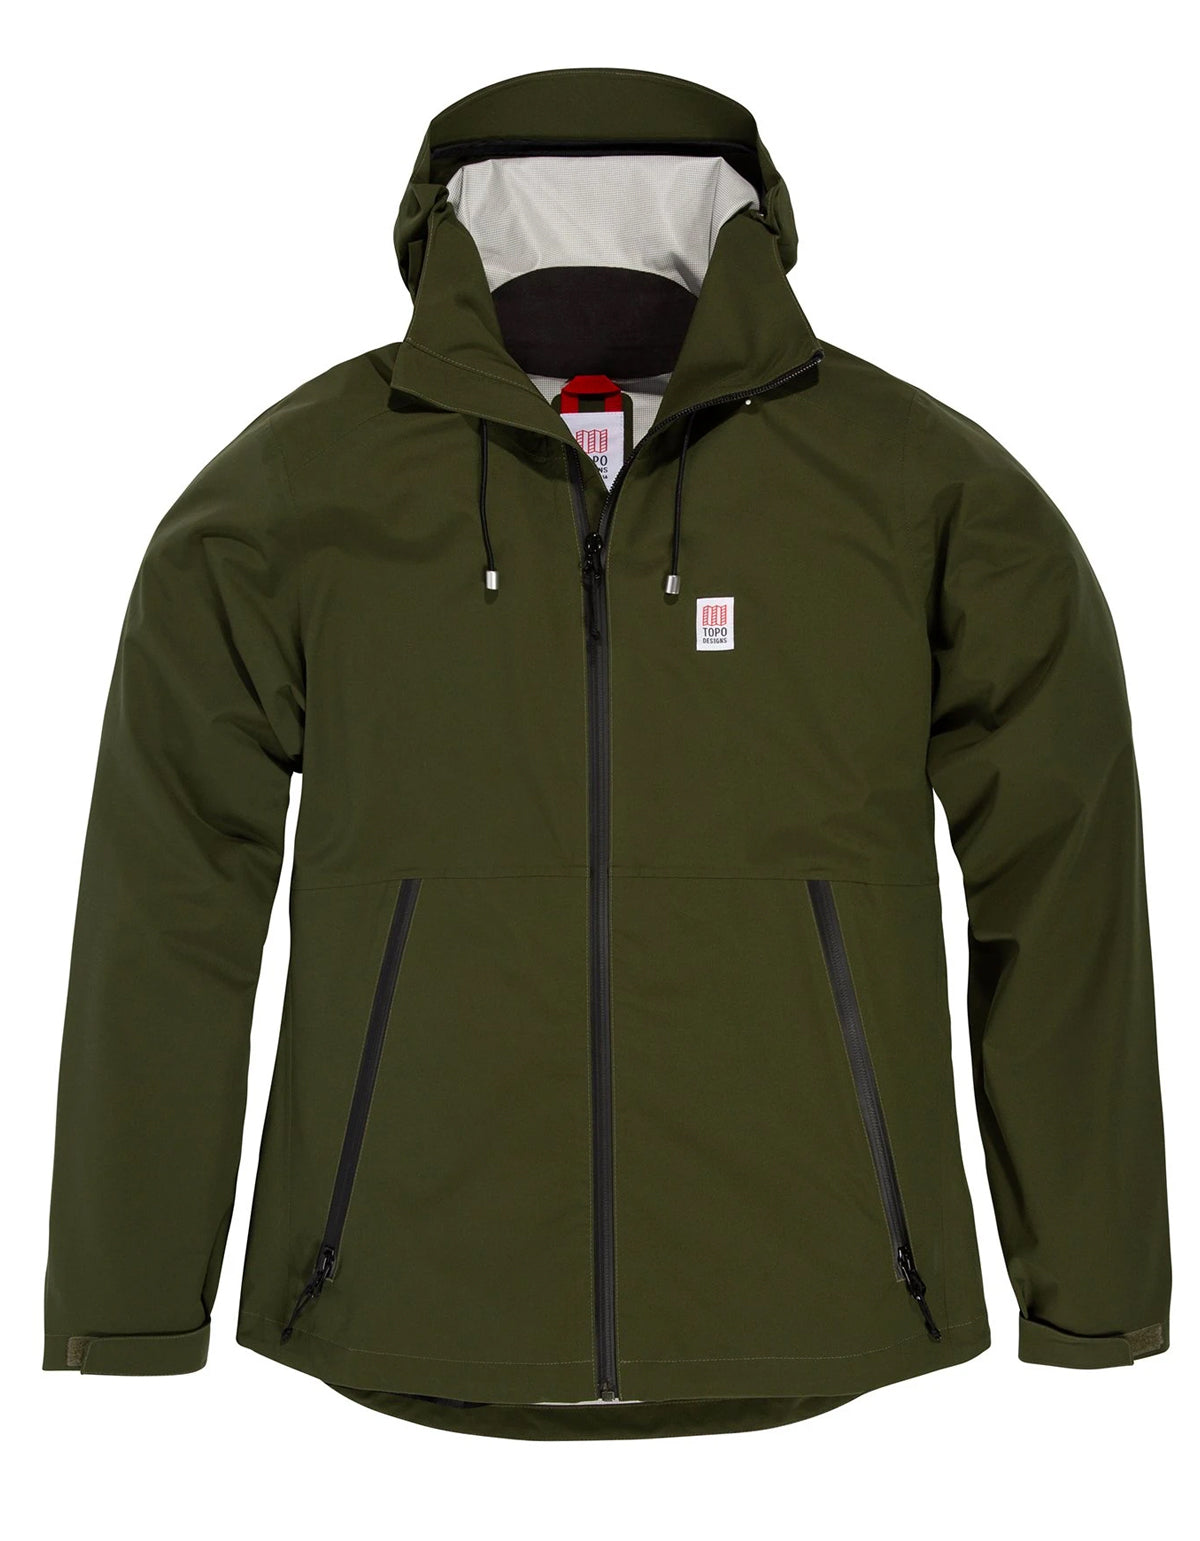 Topo Designs Women's Global Jacket Olive